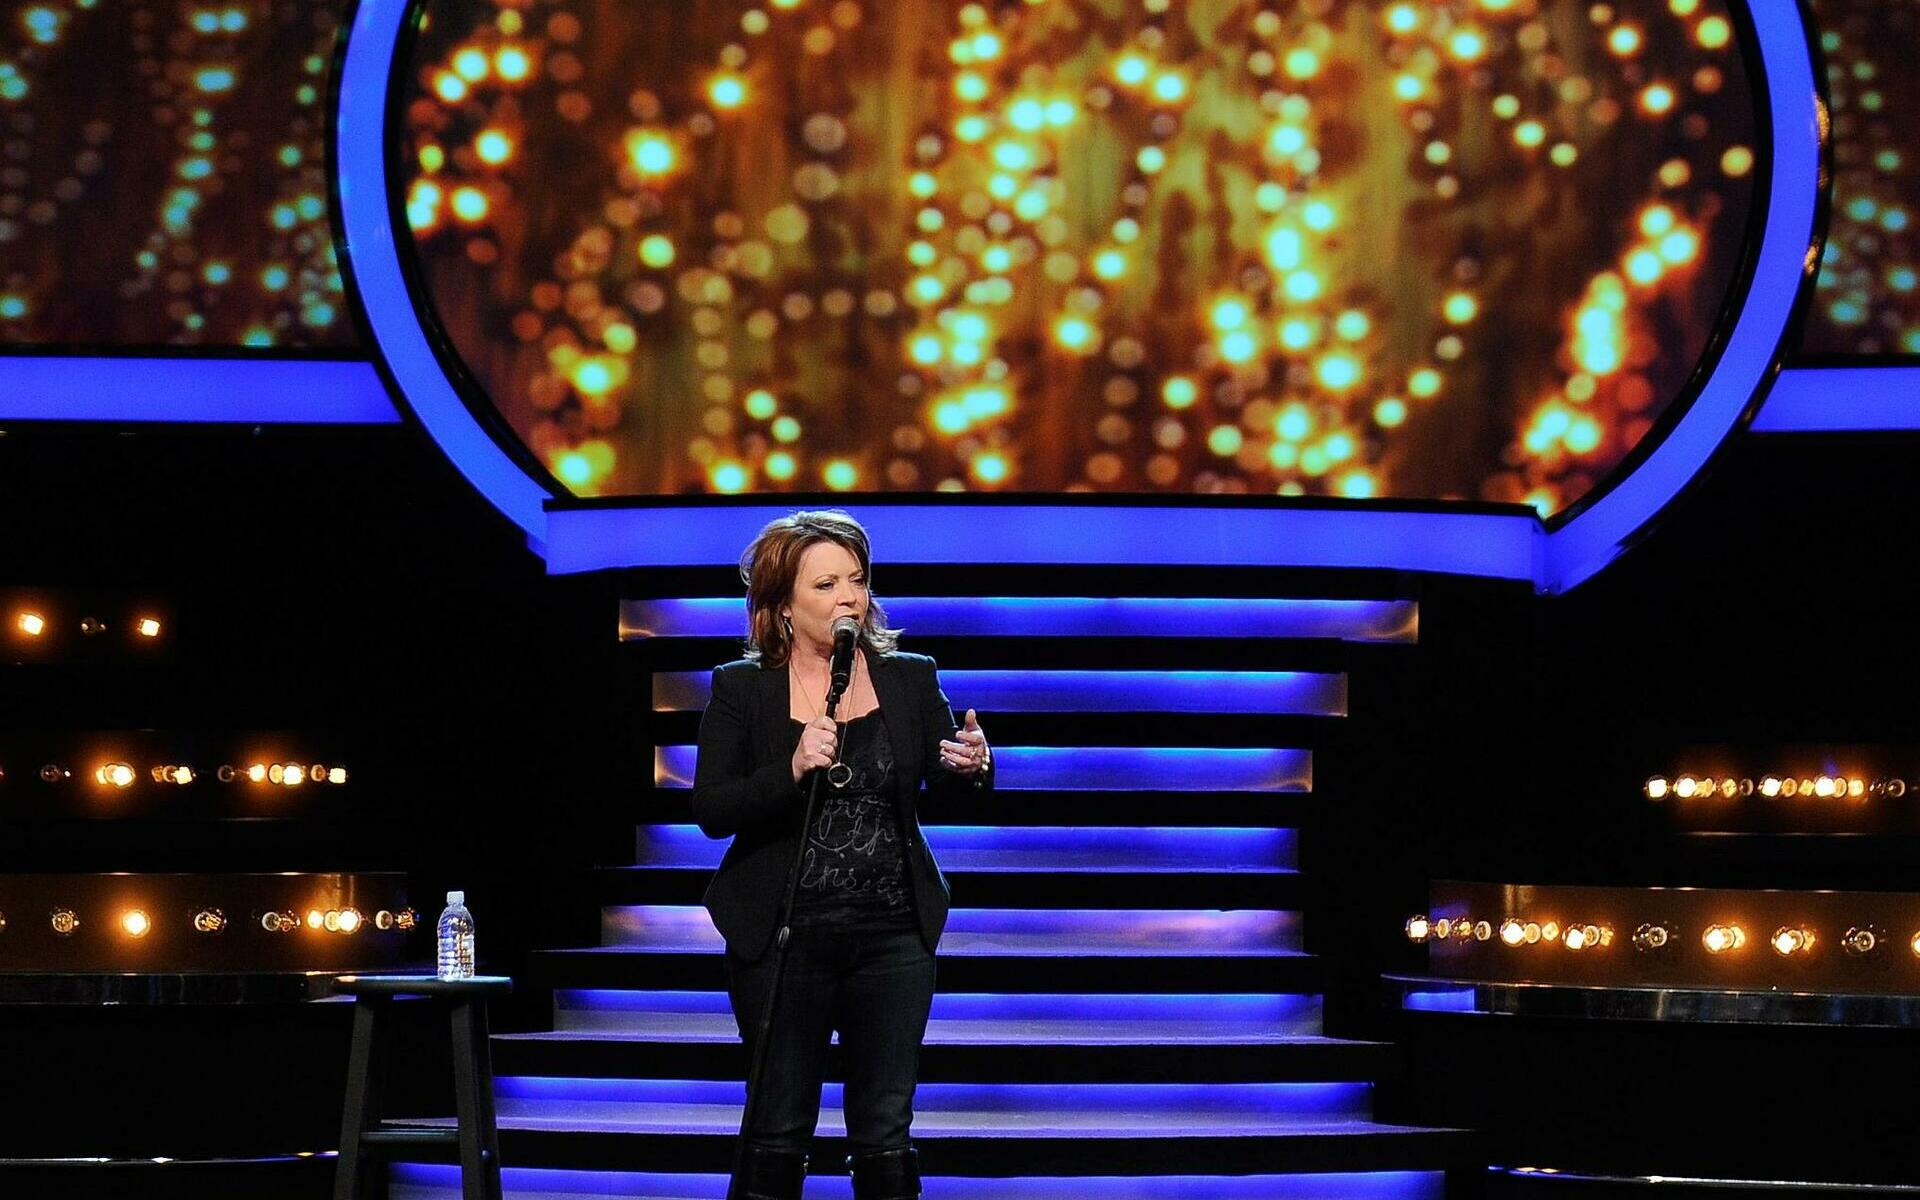 PARKING Kathleen Madigan July concerts Tickets 7 14 2018 at 9 00 pm